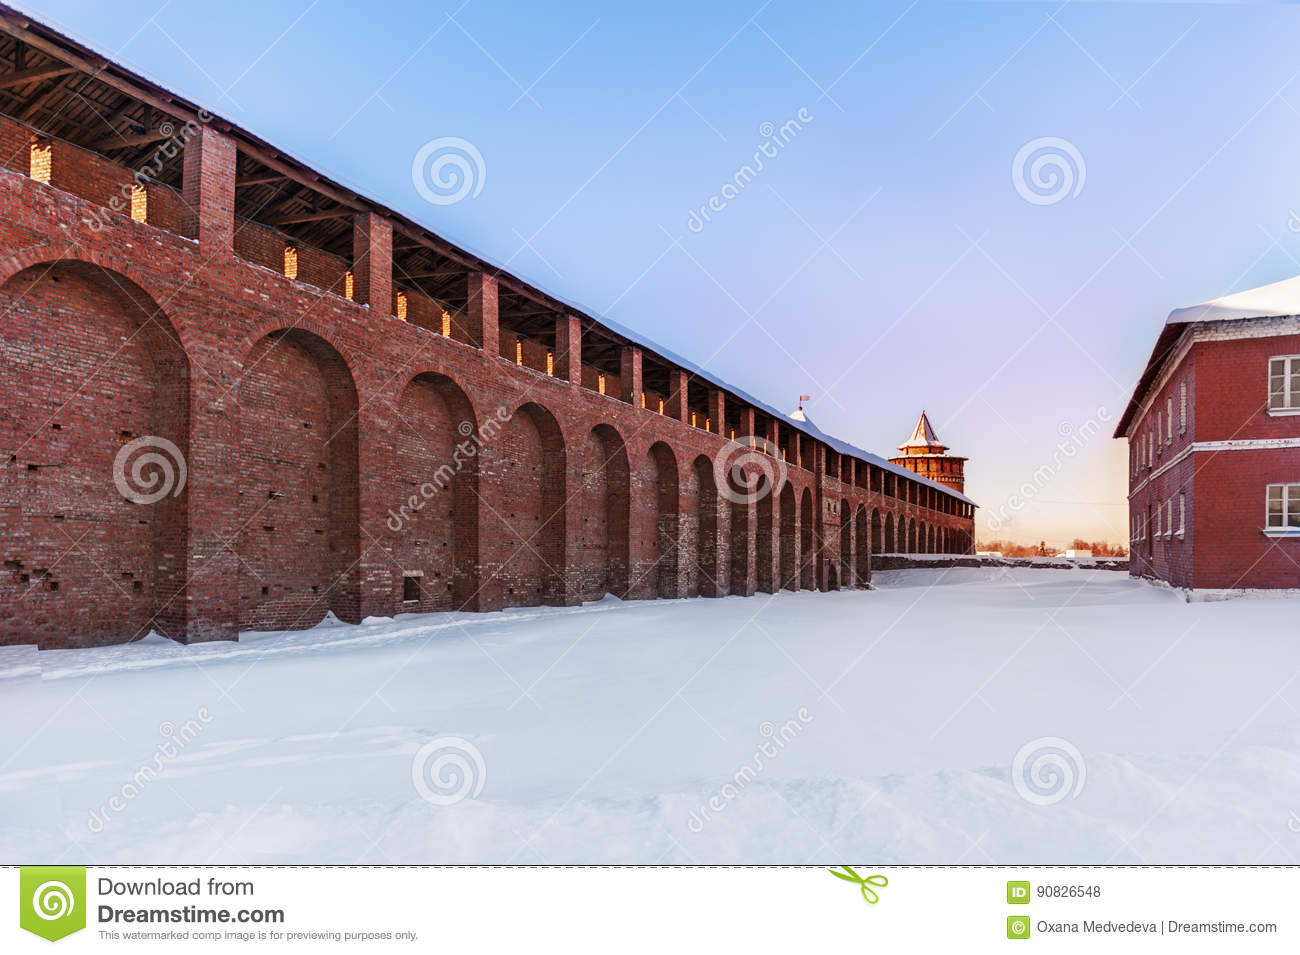 Snowy Brick Factory With Smoking Chimney At Sunset Stock